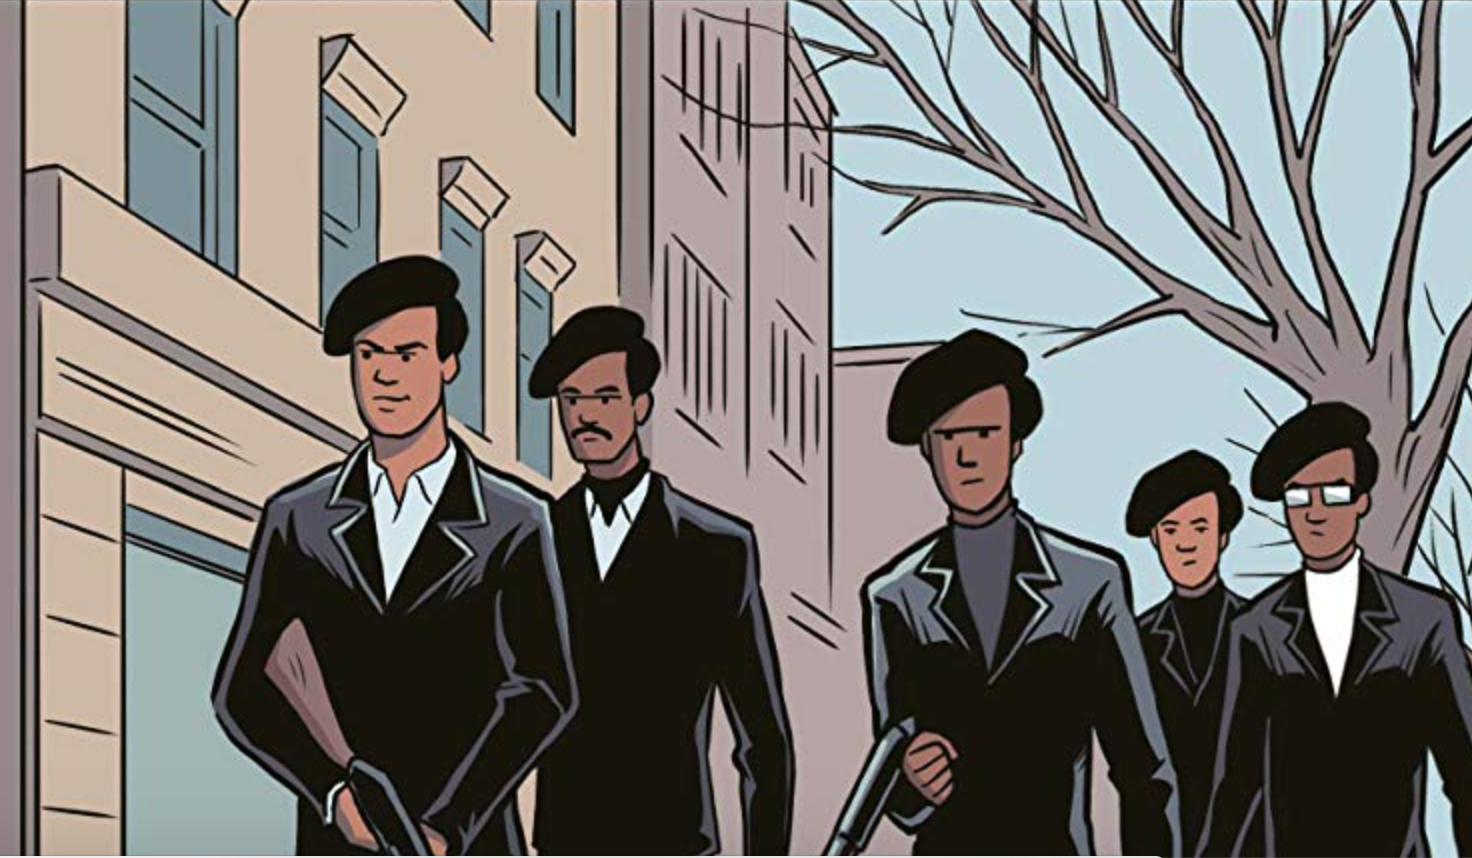 Drawing of five Black men in berets, two with rifles, on a city street